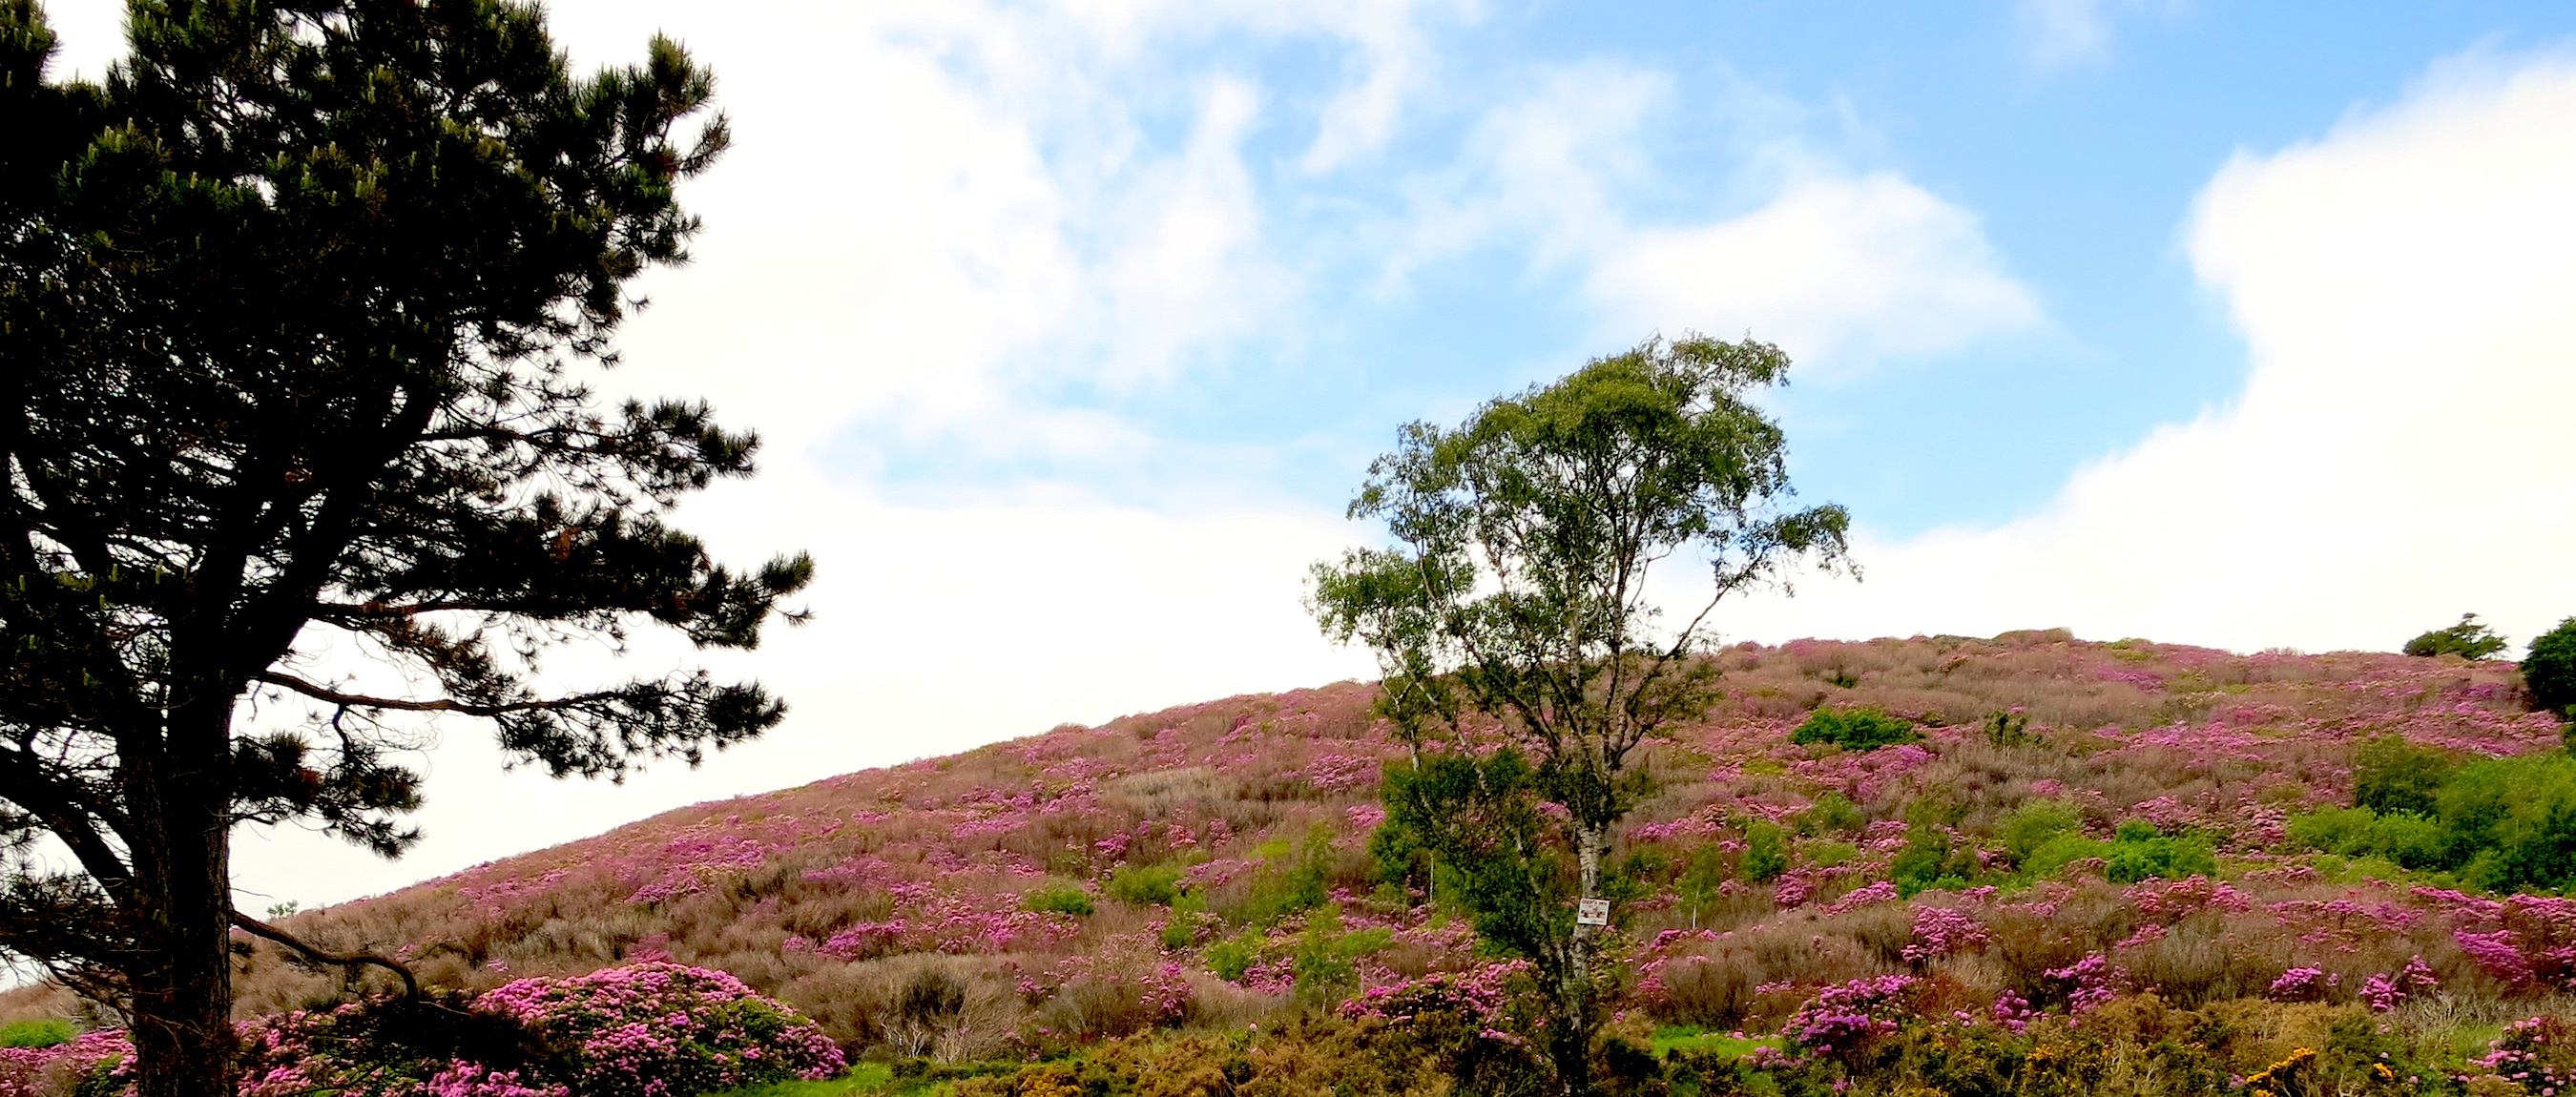 A hillside of rhododendron in the Mourne Mountains, County Down, Ireland